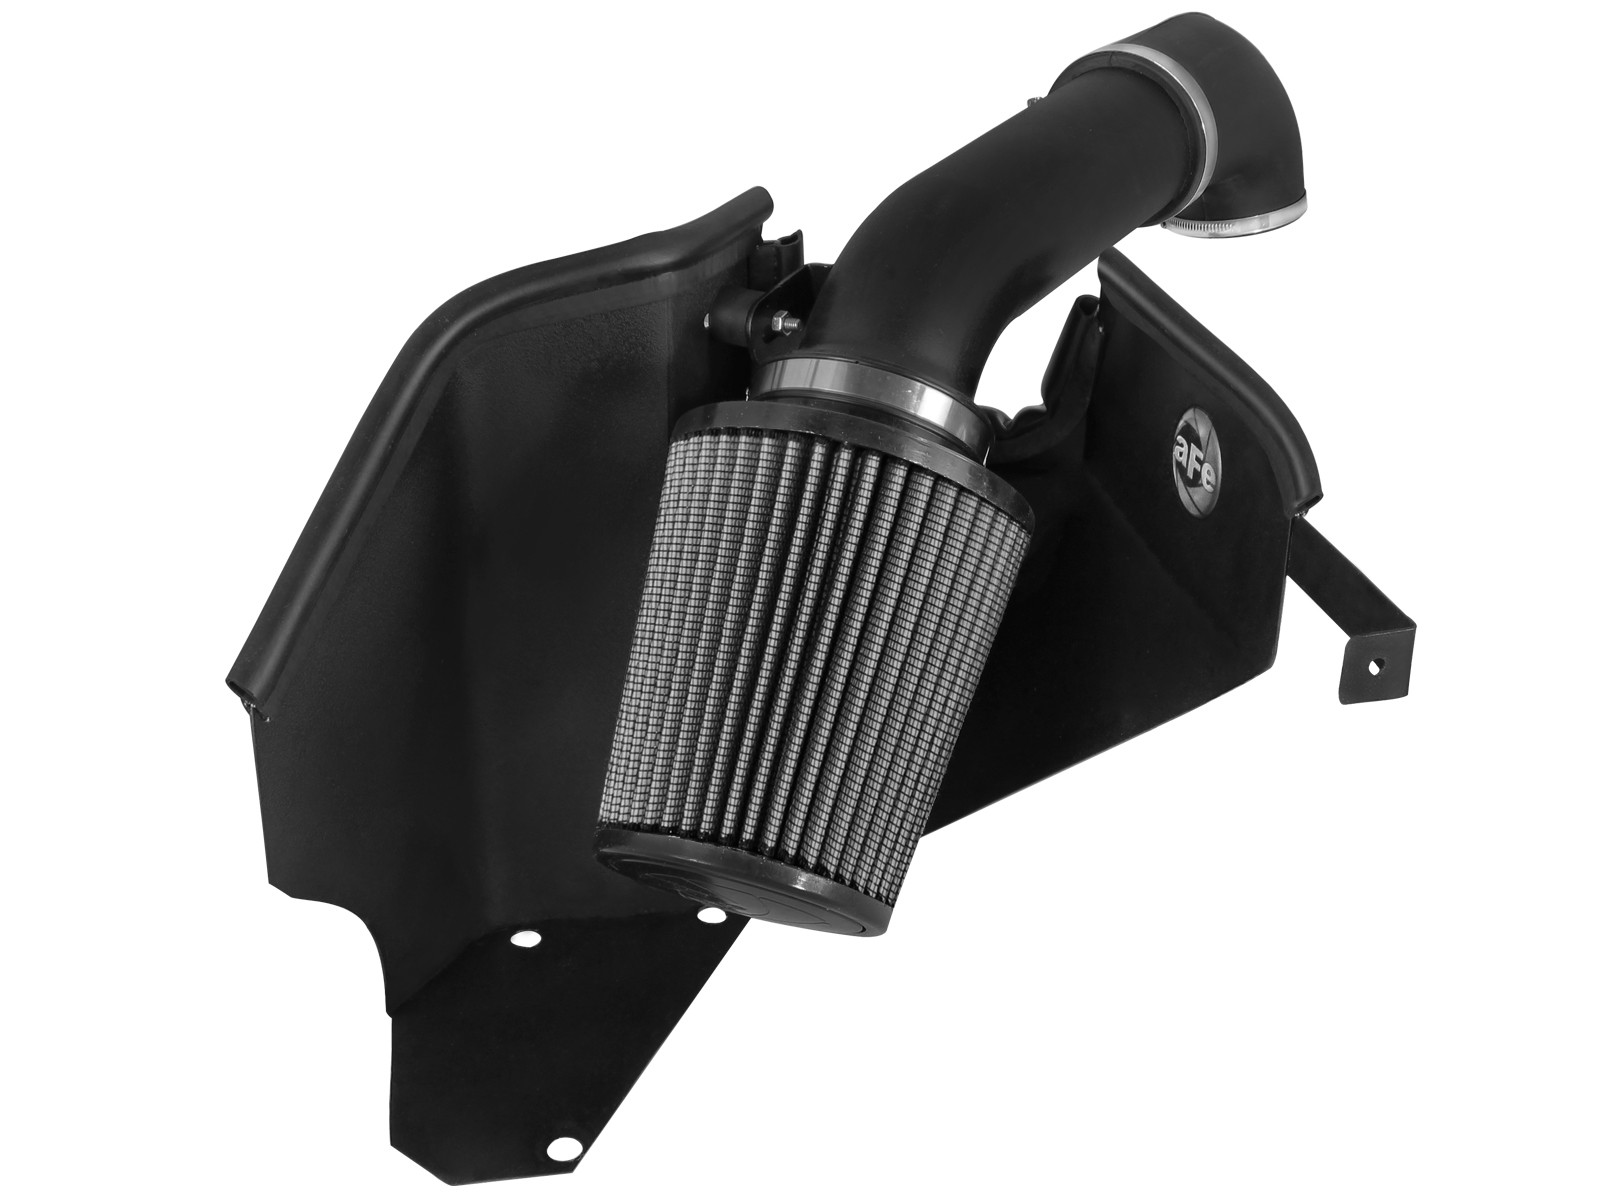 aFe POWER 51-12562 Magnum FORCE Stage-2 Pro DRY S Cold Air Intake System